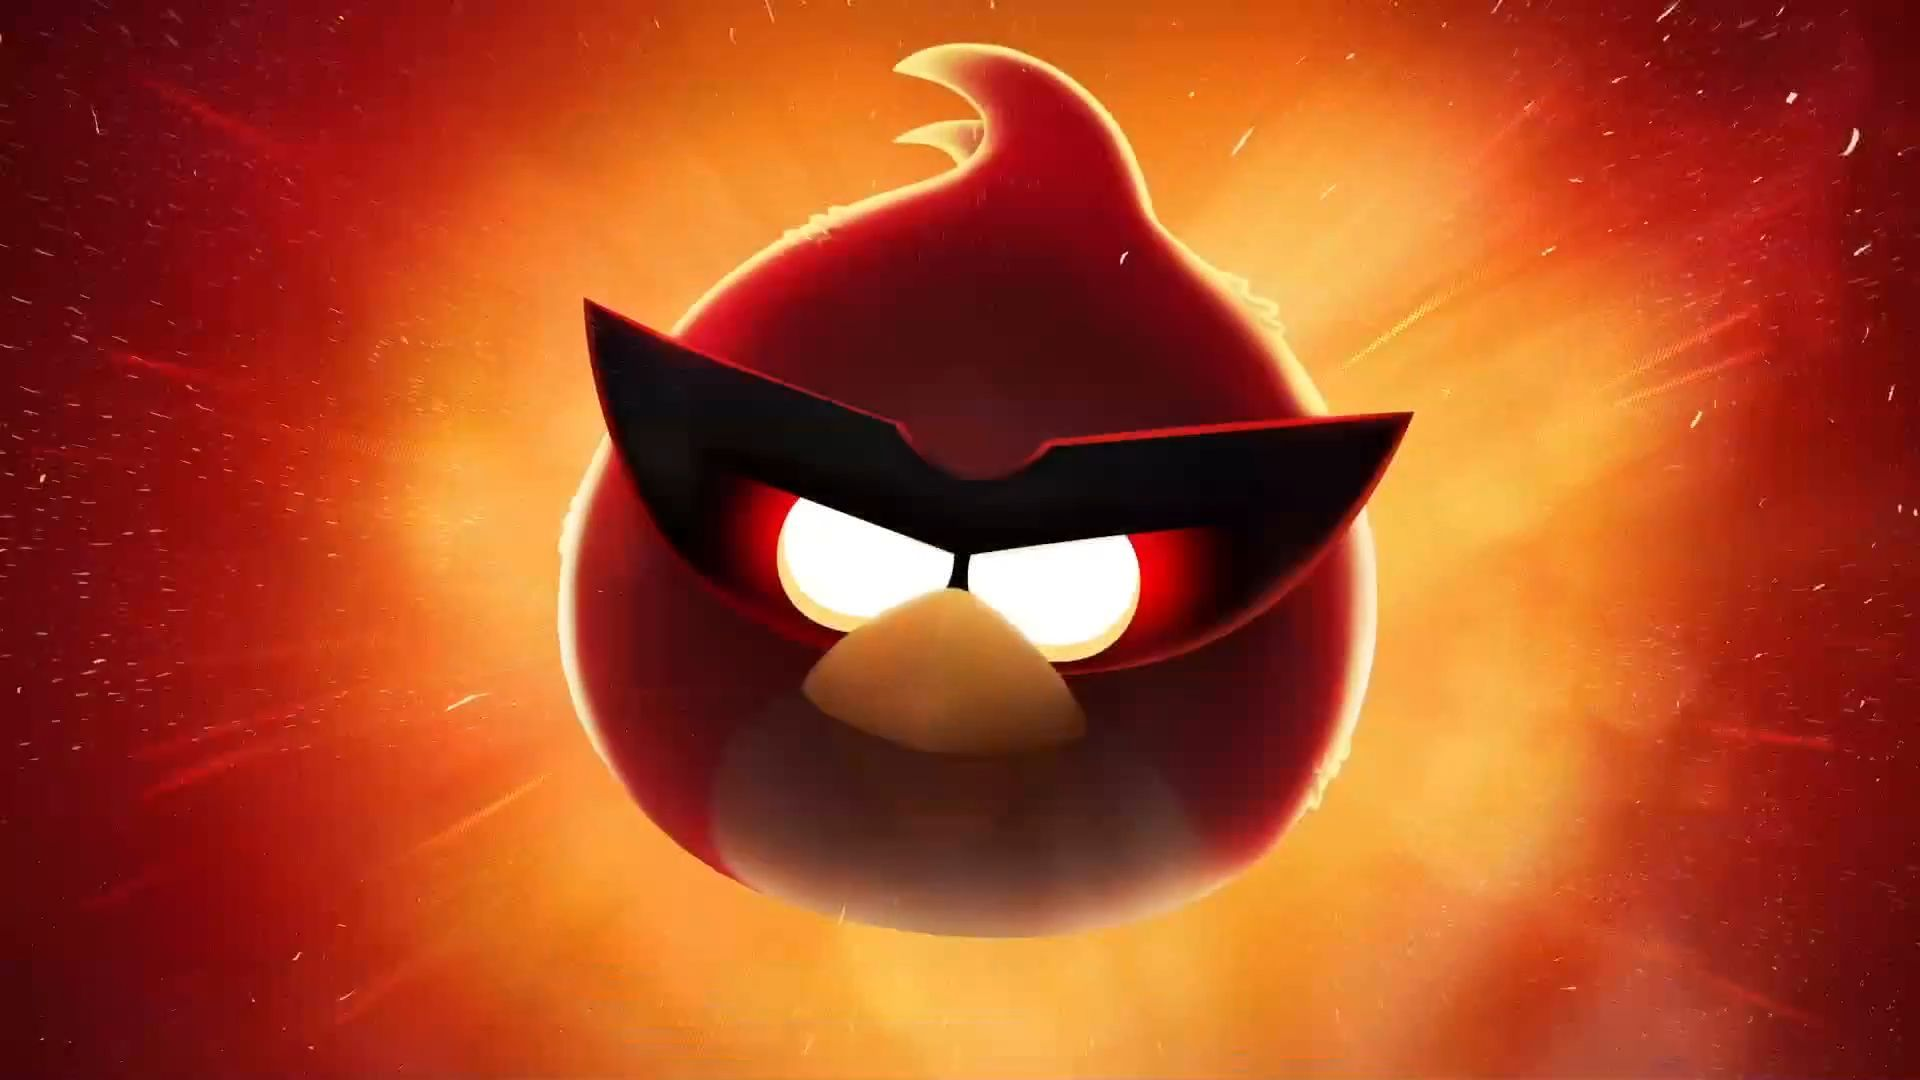 Beautiful Wallpaper Angry Mobile Hd - 312fba2e1ac2d4f7f6d38c54bc4ead57  You Should Have_127523      .jpg